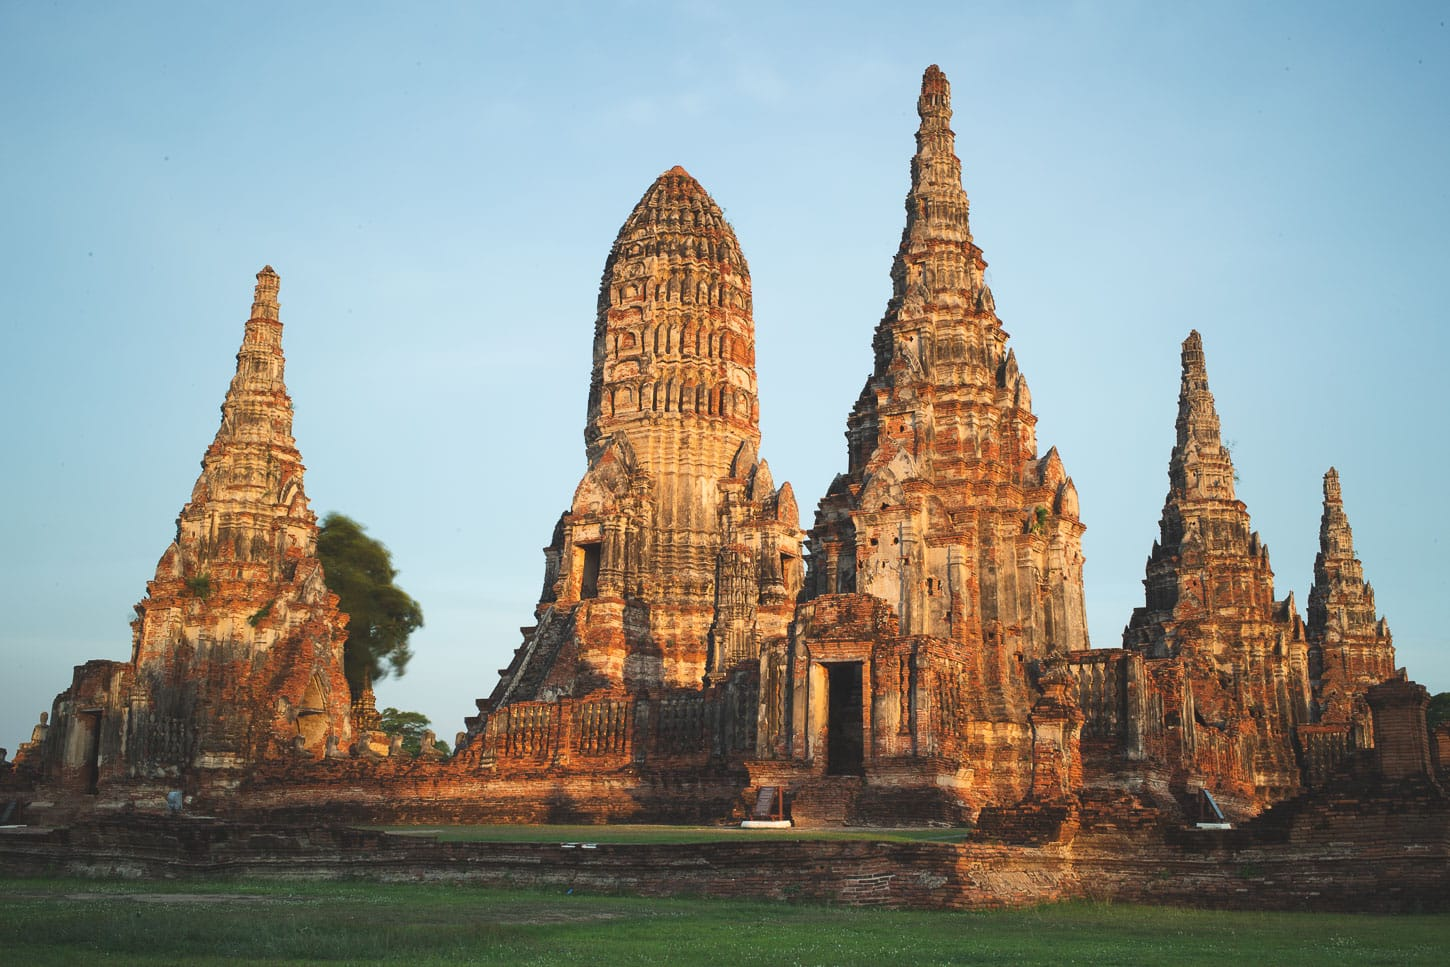 Sunset at Wat Chaiwatthanaram in Ayutthaya, Thailand